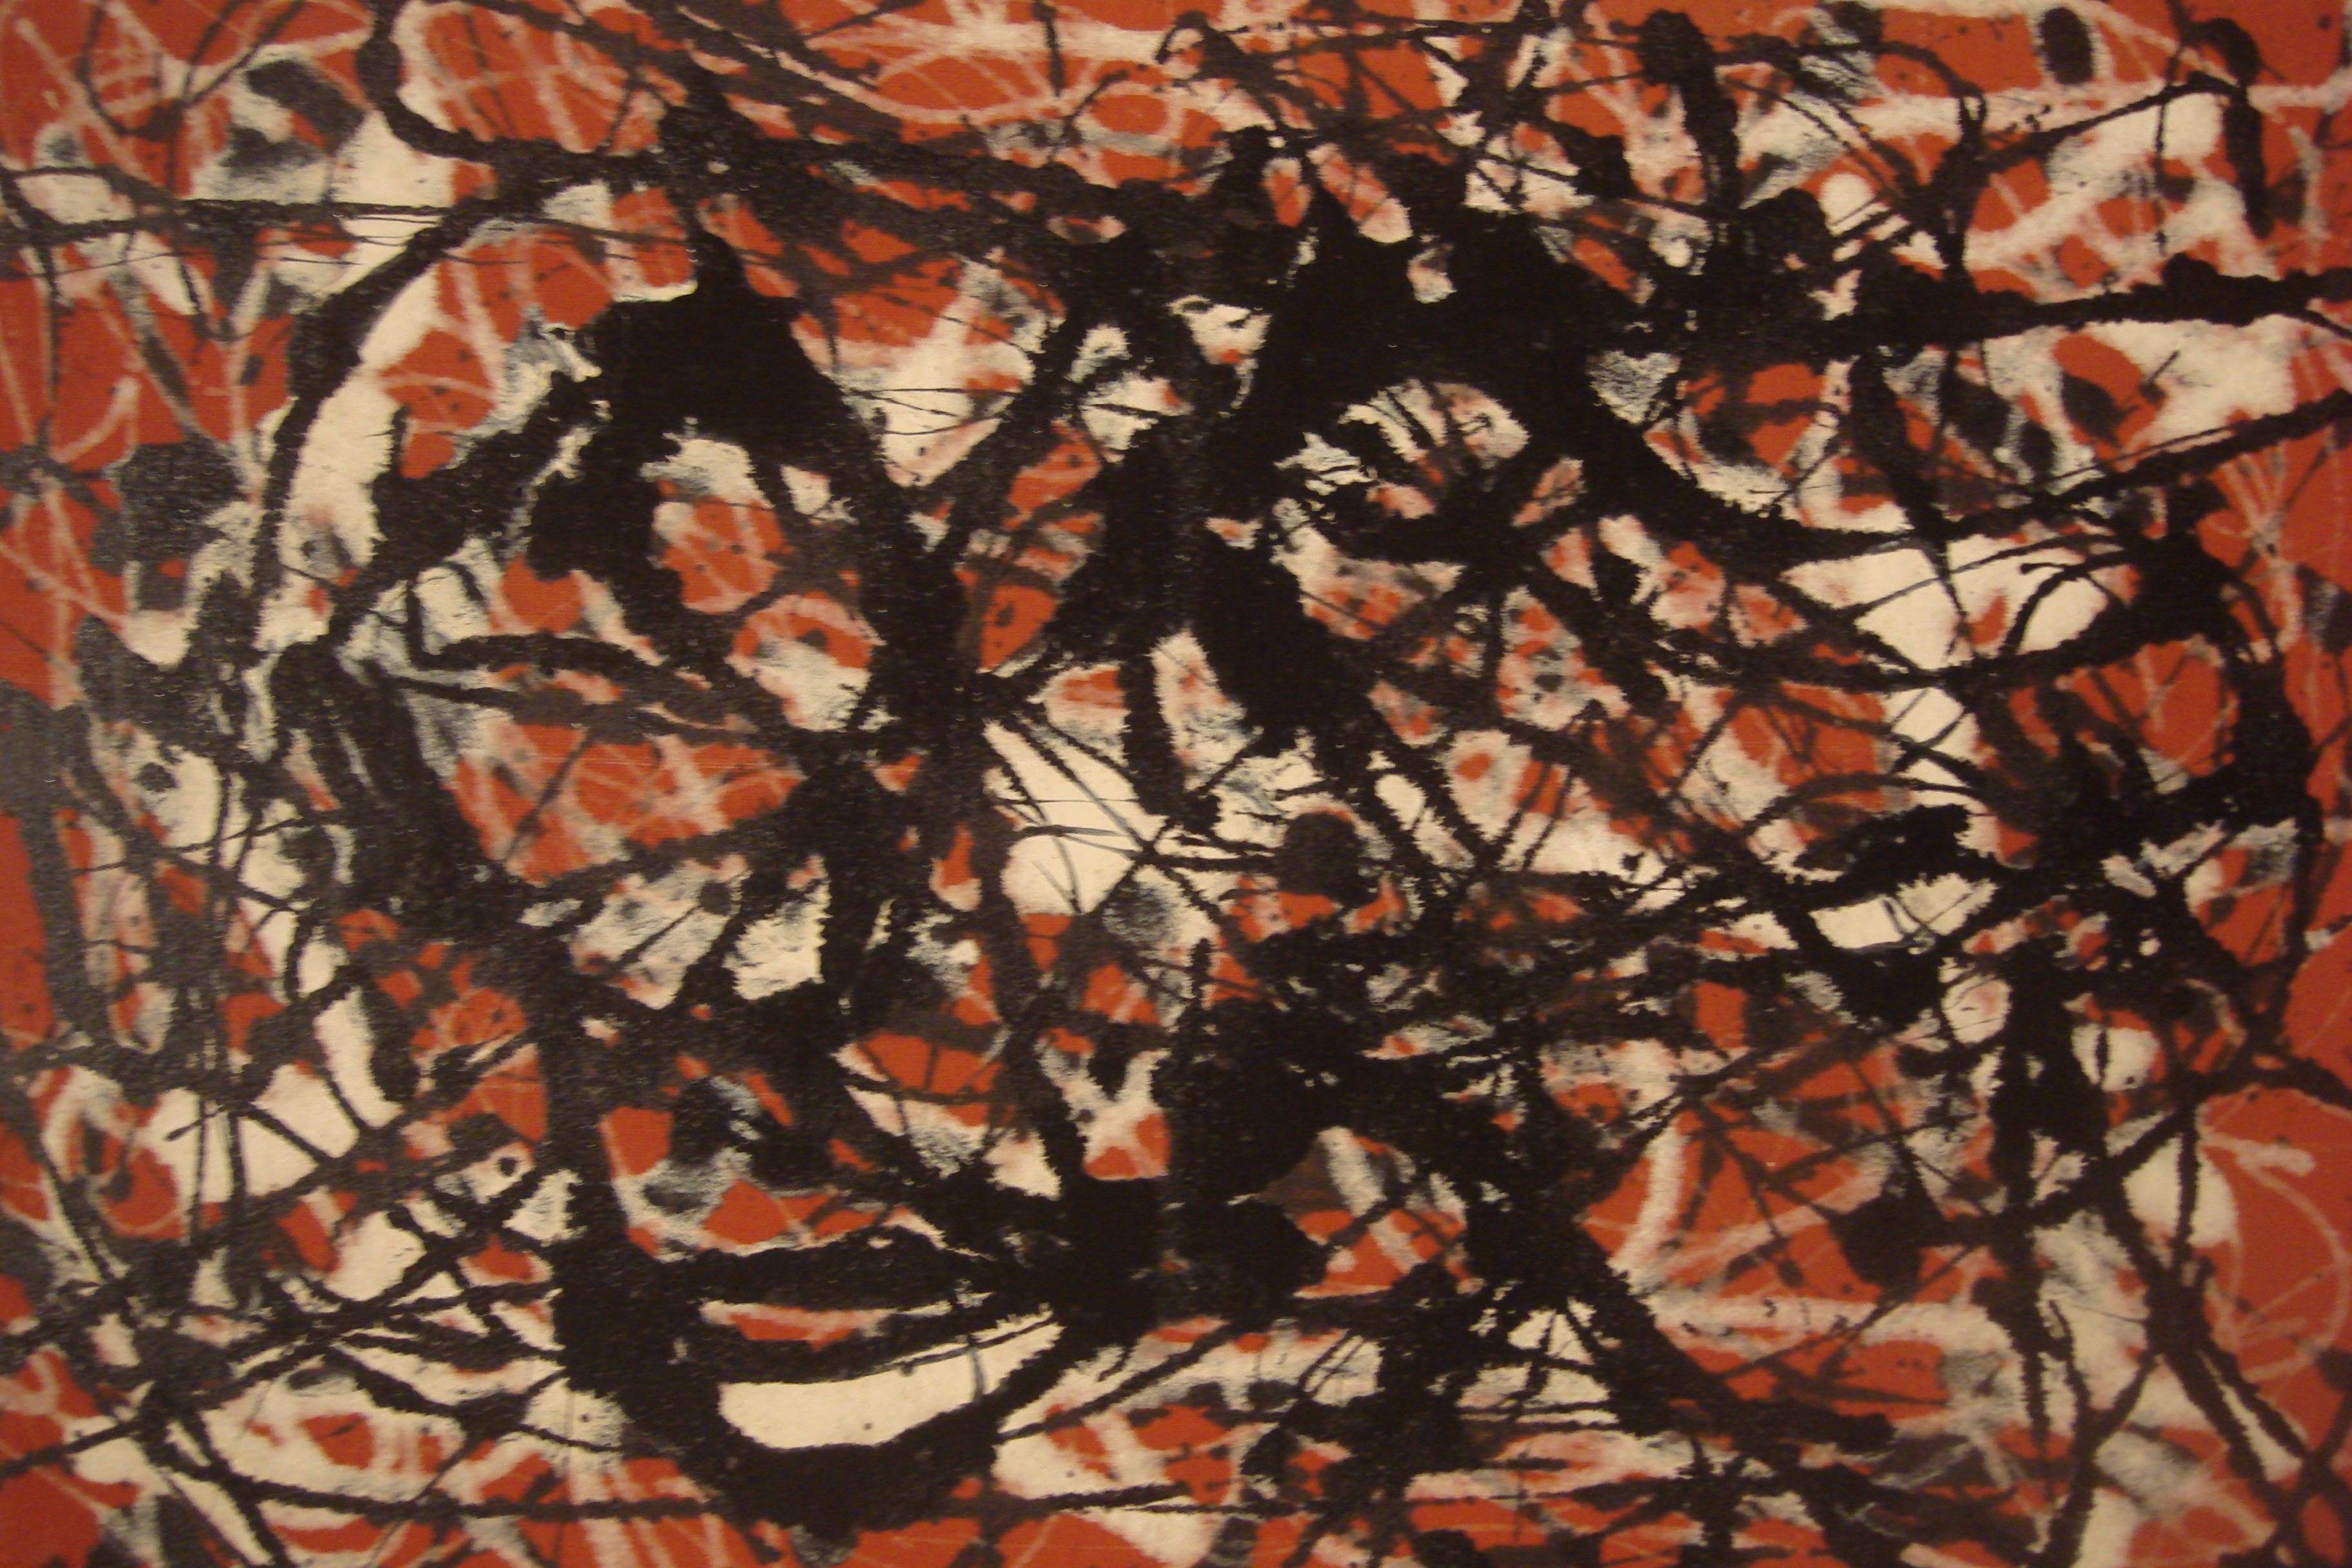 Jackson Pollock: from representation to abstract expression – Vin ...